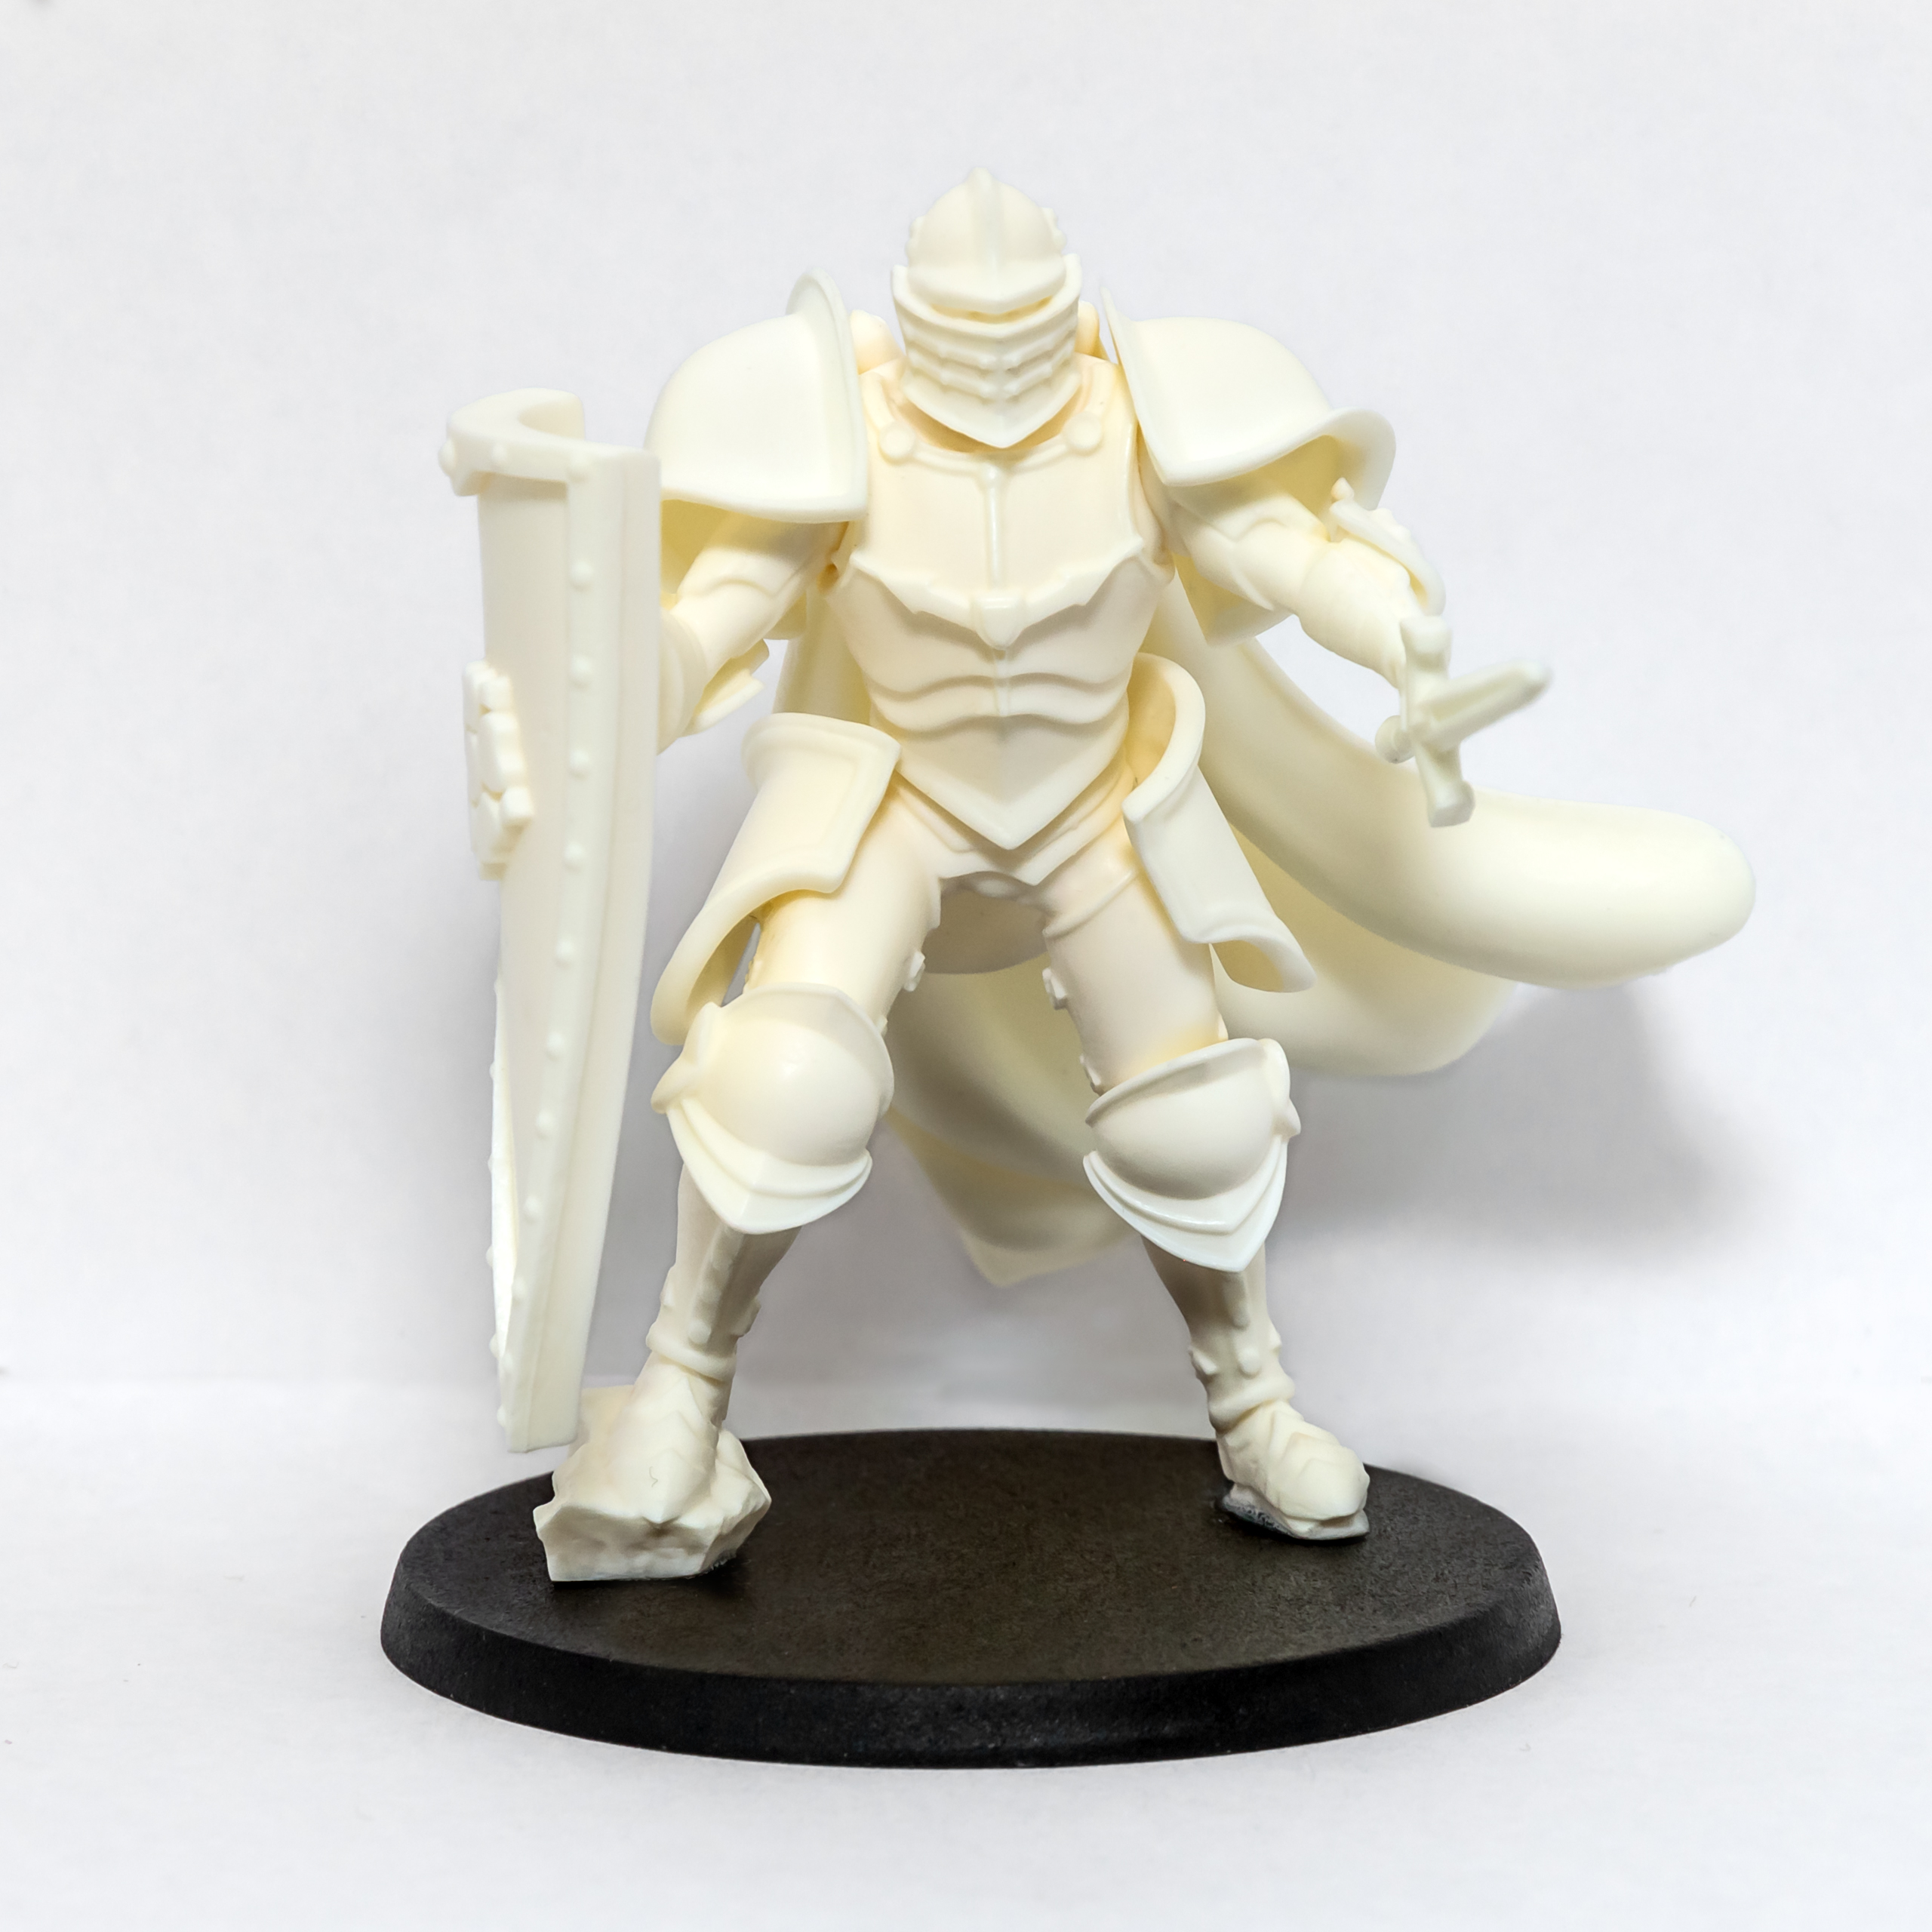 Kingdom of Celesia Medium Praetorian - Missionary MK II - Production Resin Miniature